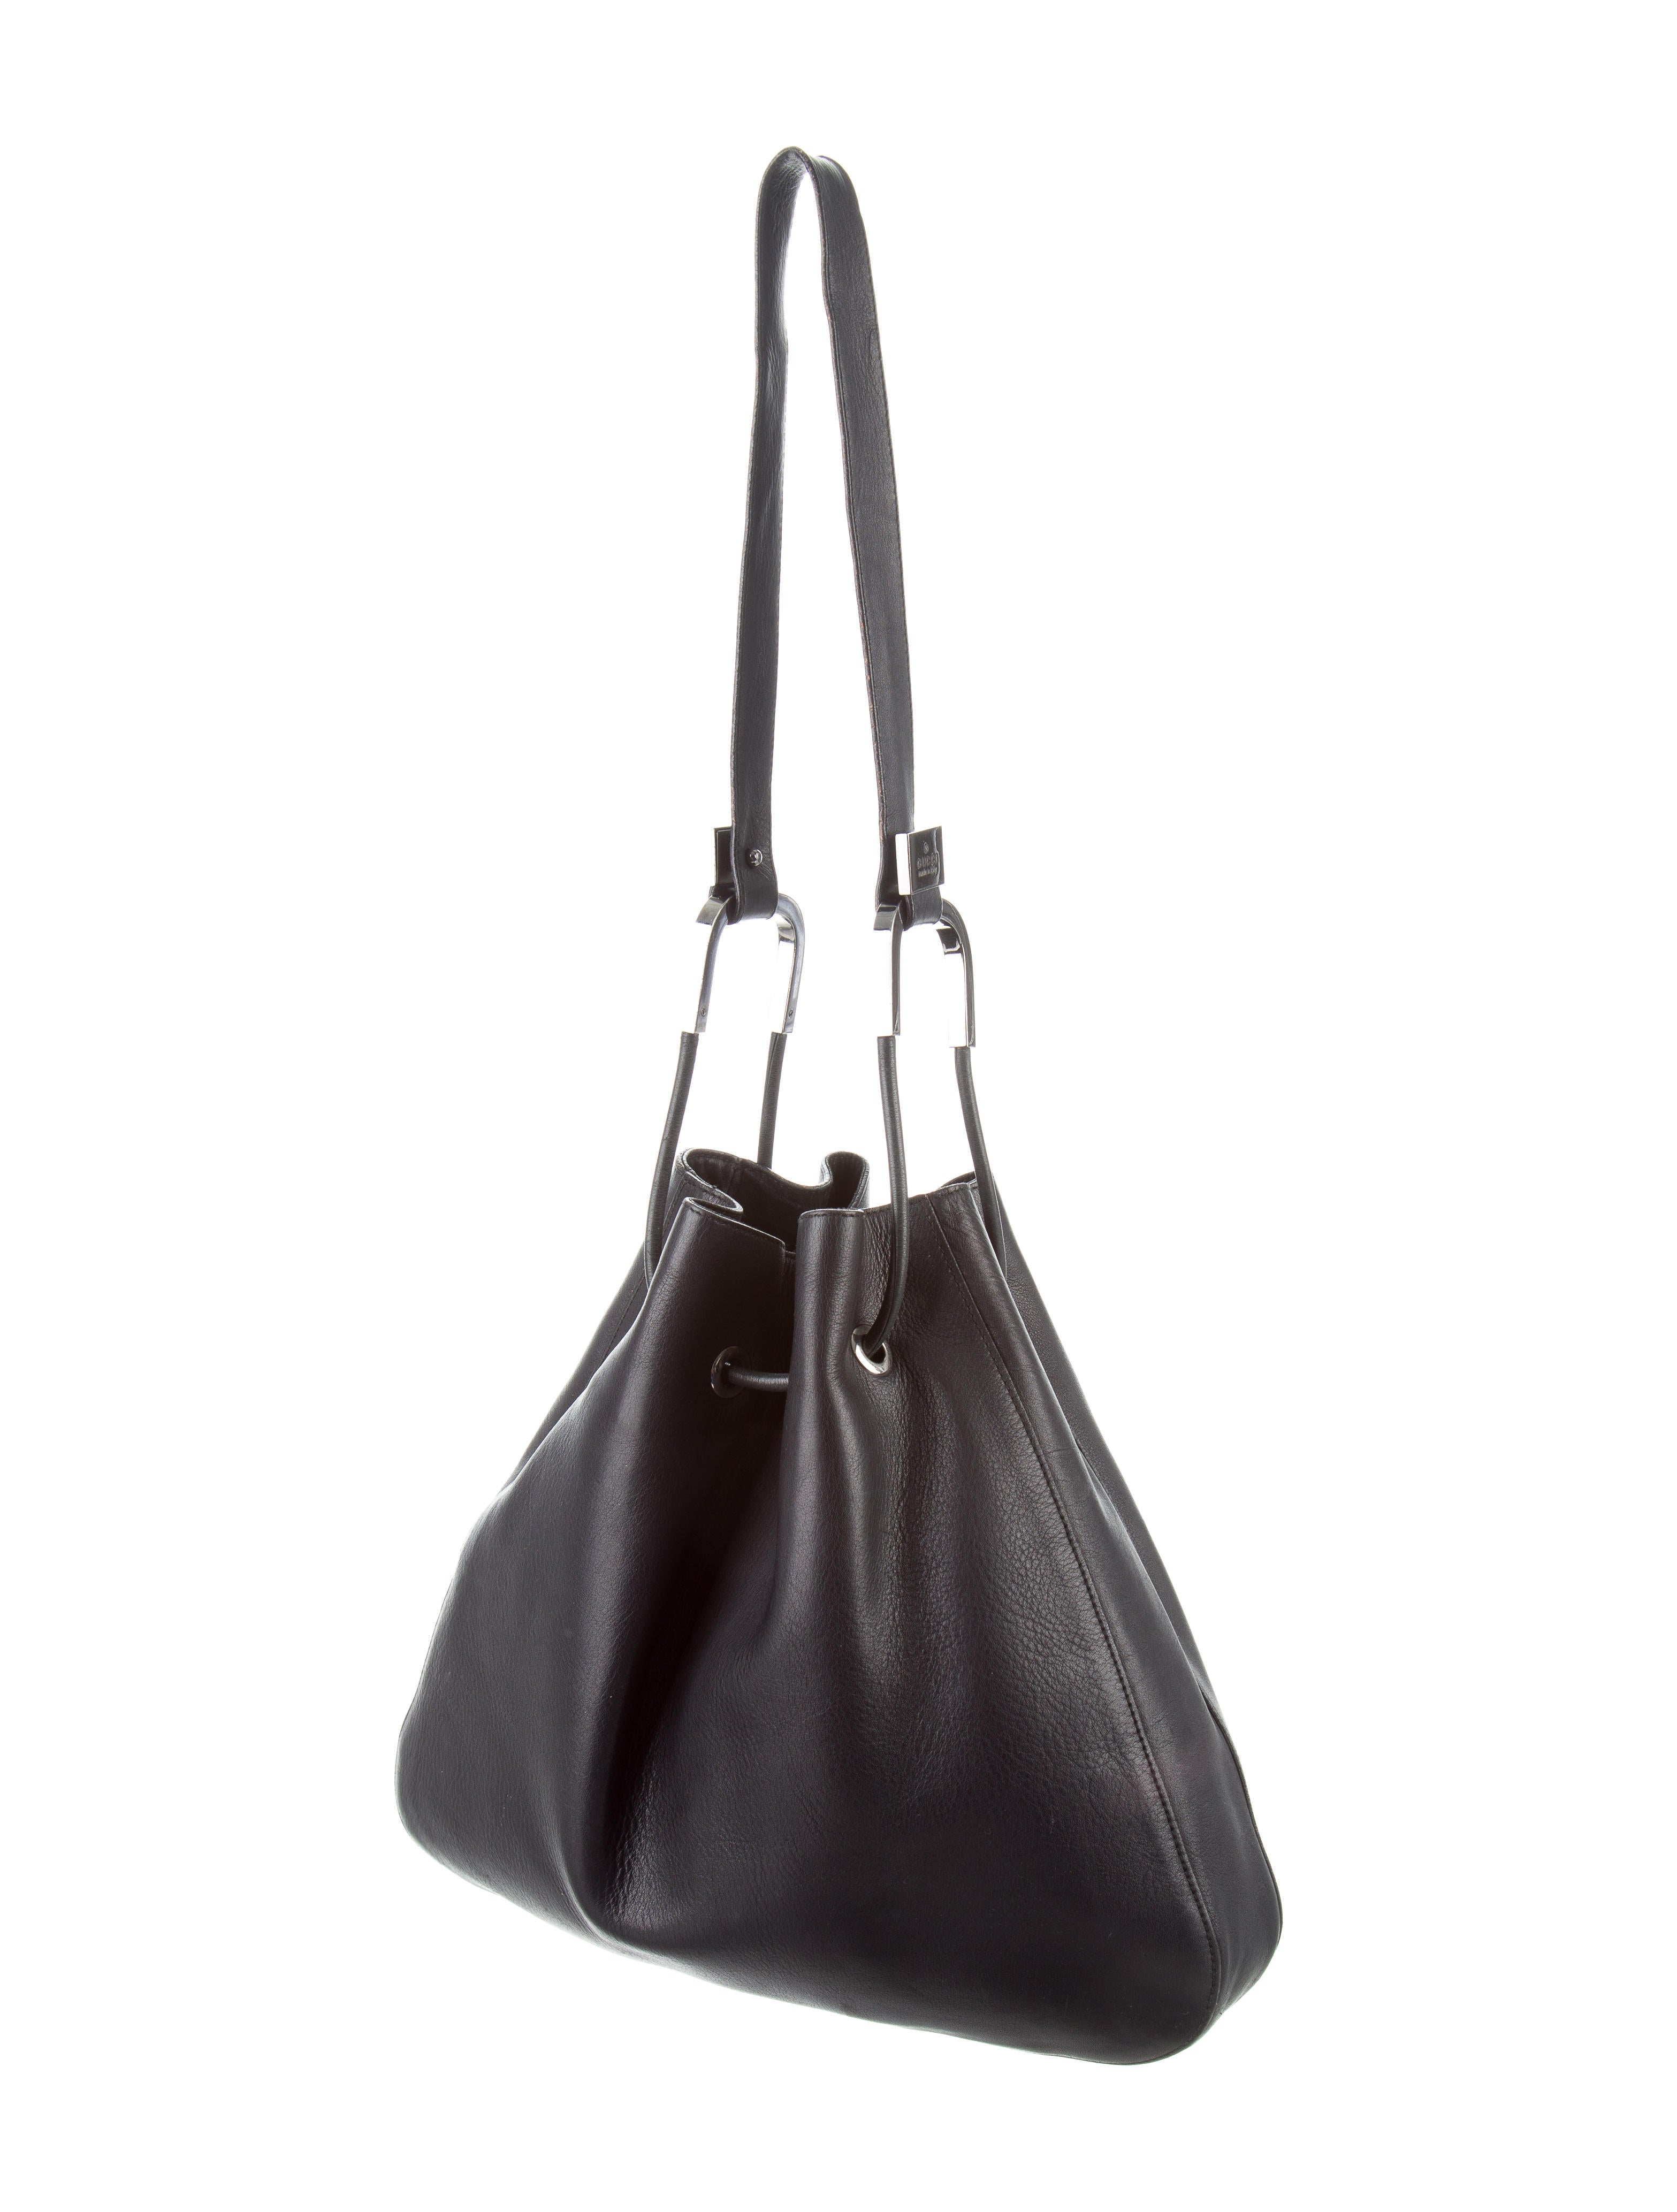 04a8842ba9cb Gucci Classic Leather Bags | Stanford Center for Opportunity Policy ...